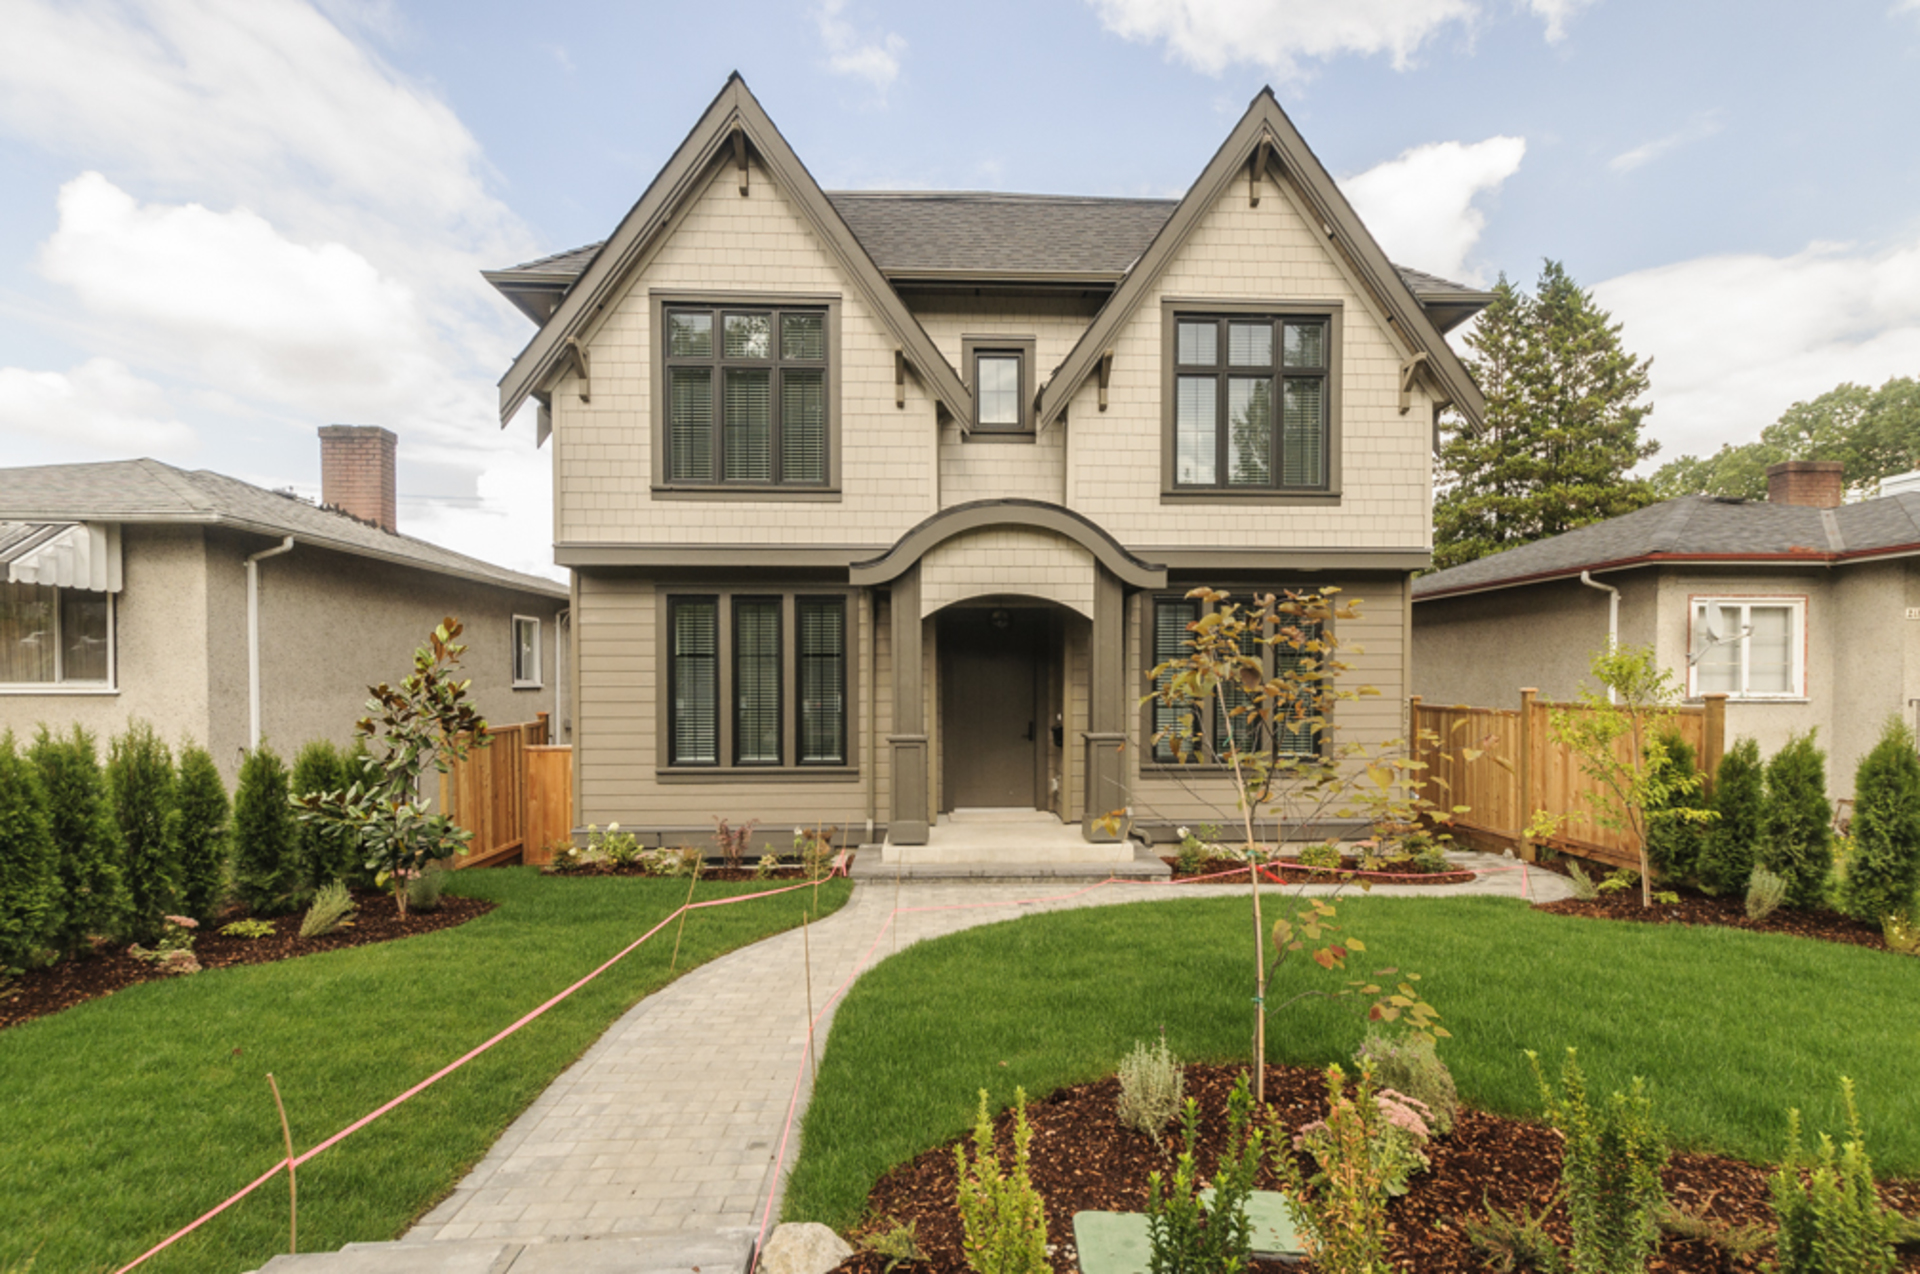 2177-e-20th-ave-web-4 at 2177 East 20th Avenue, Grandview VE, Vancouver East